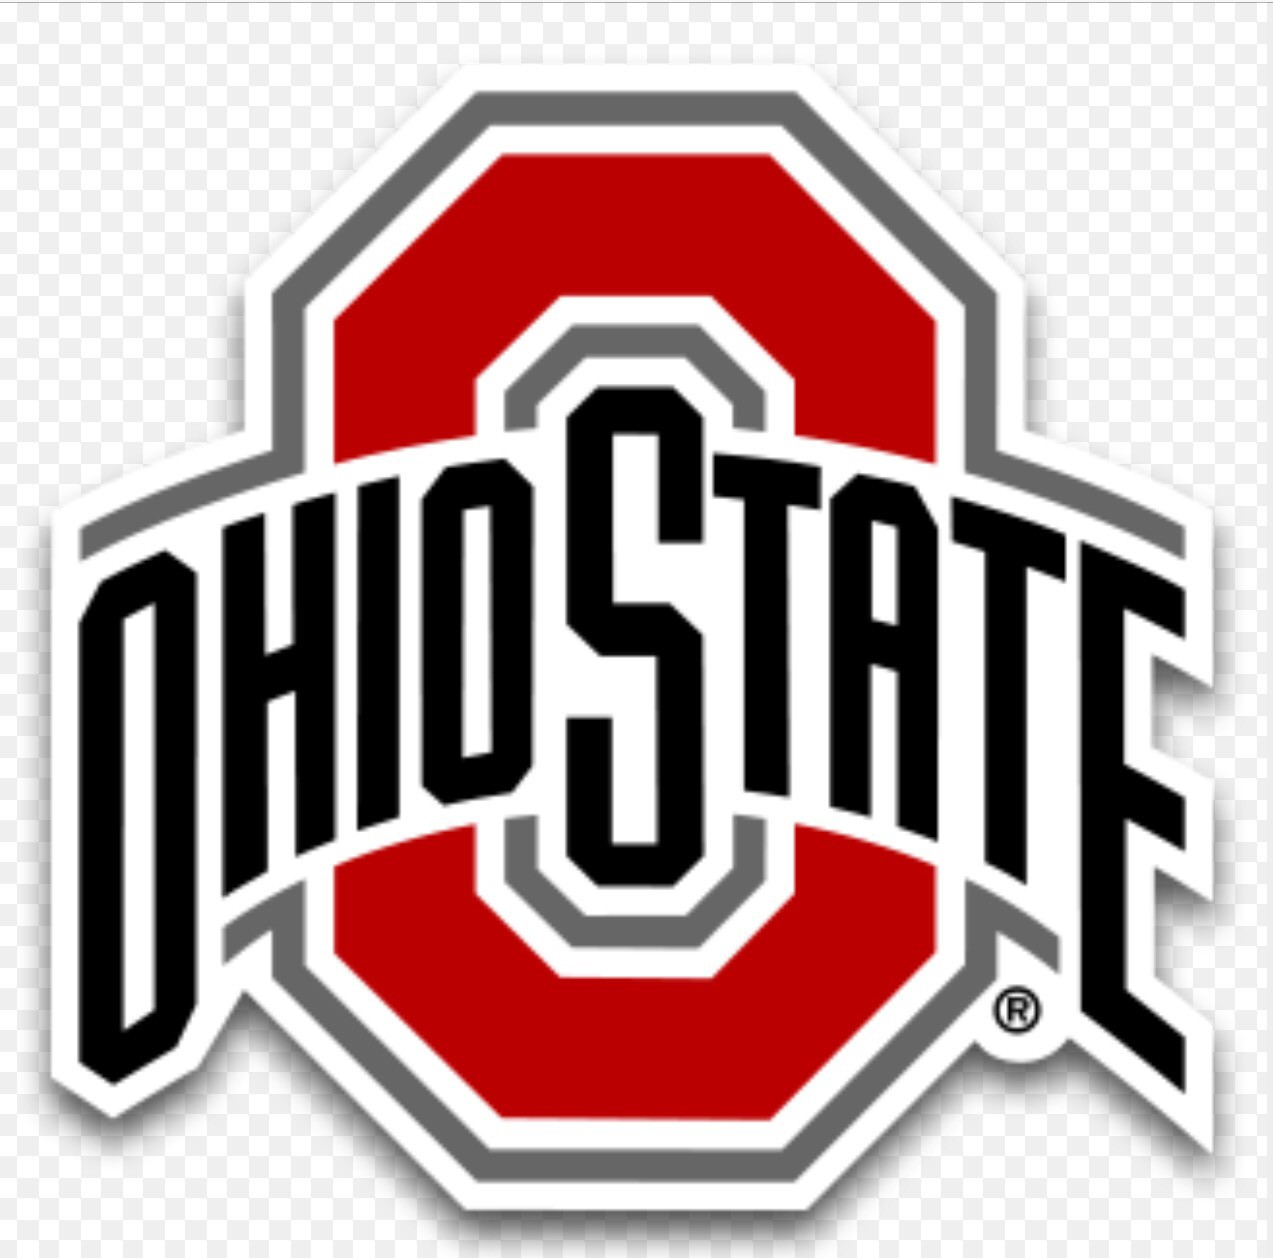 One of the colleges I'm interested in is Ohio state